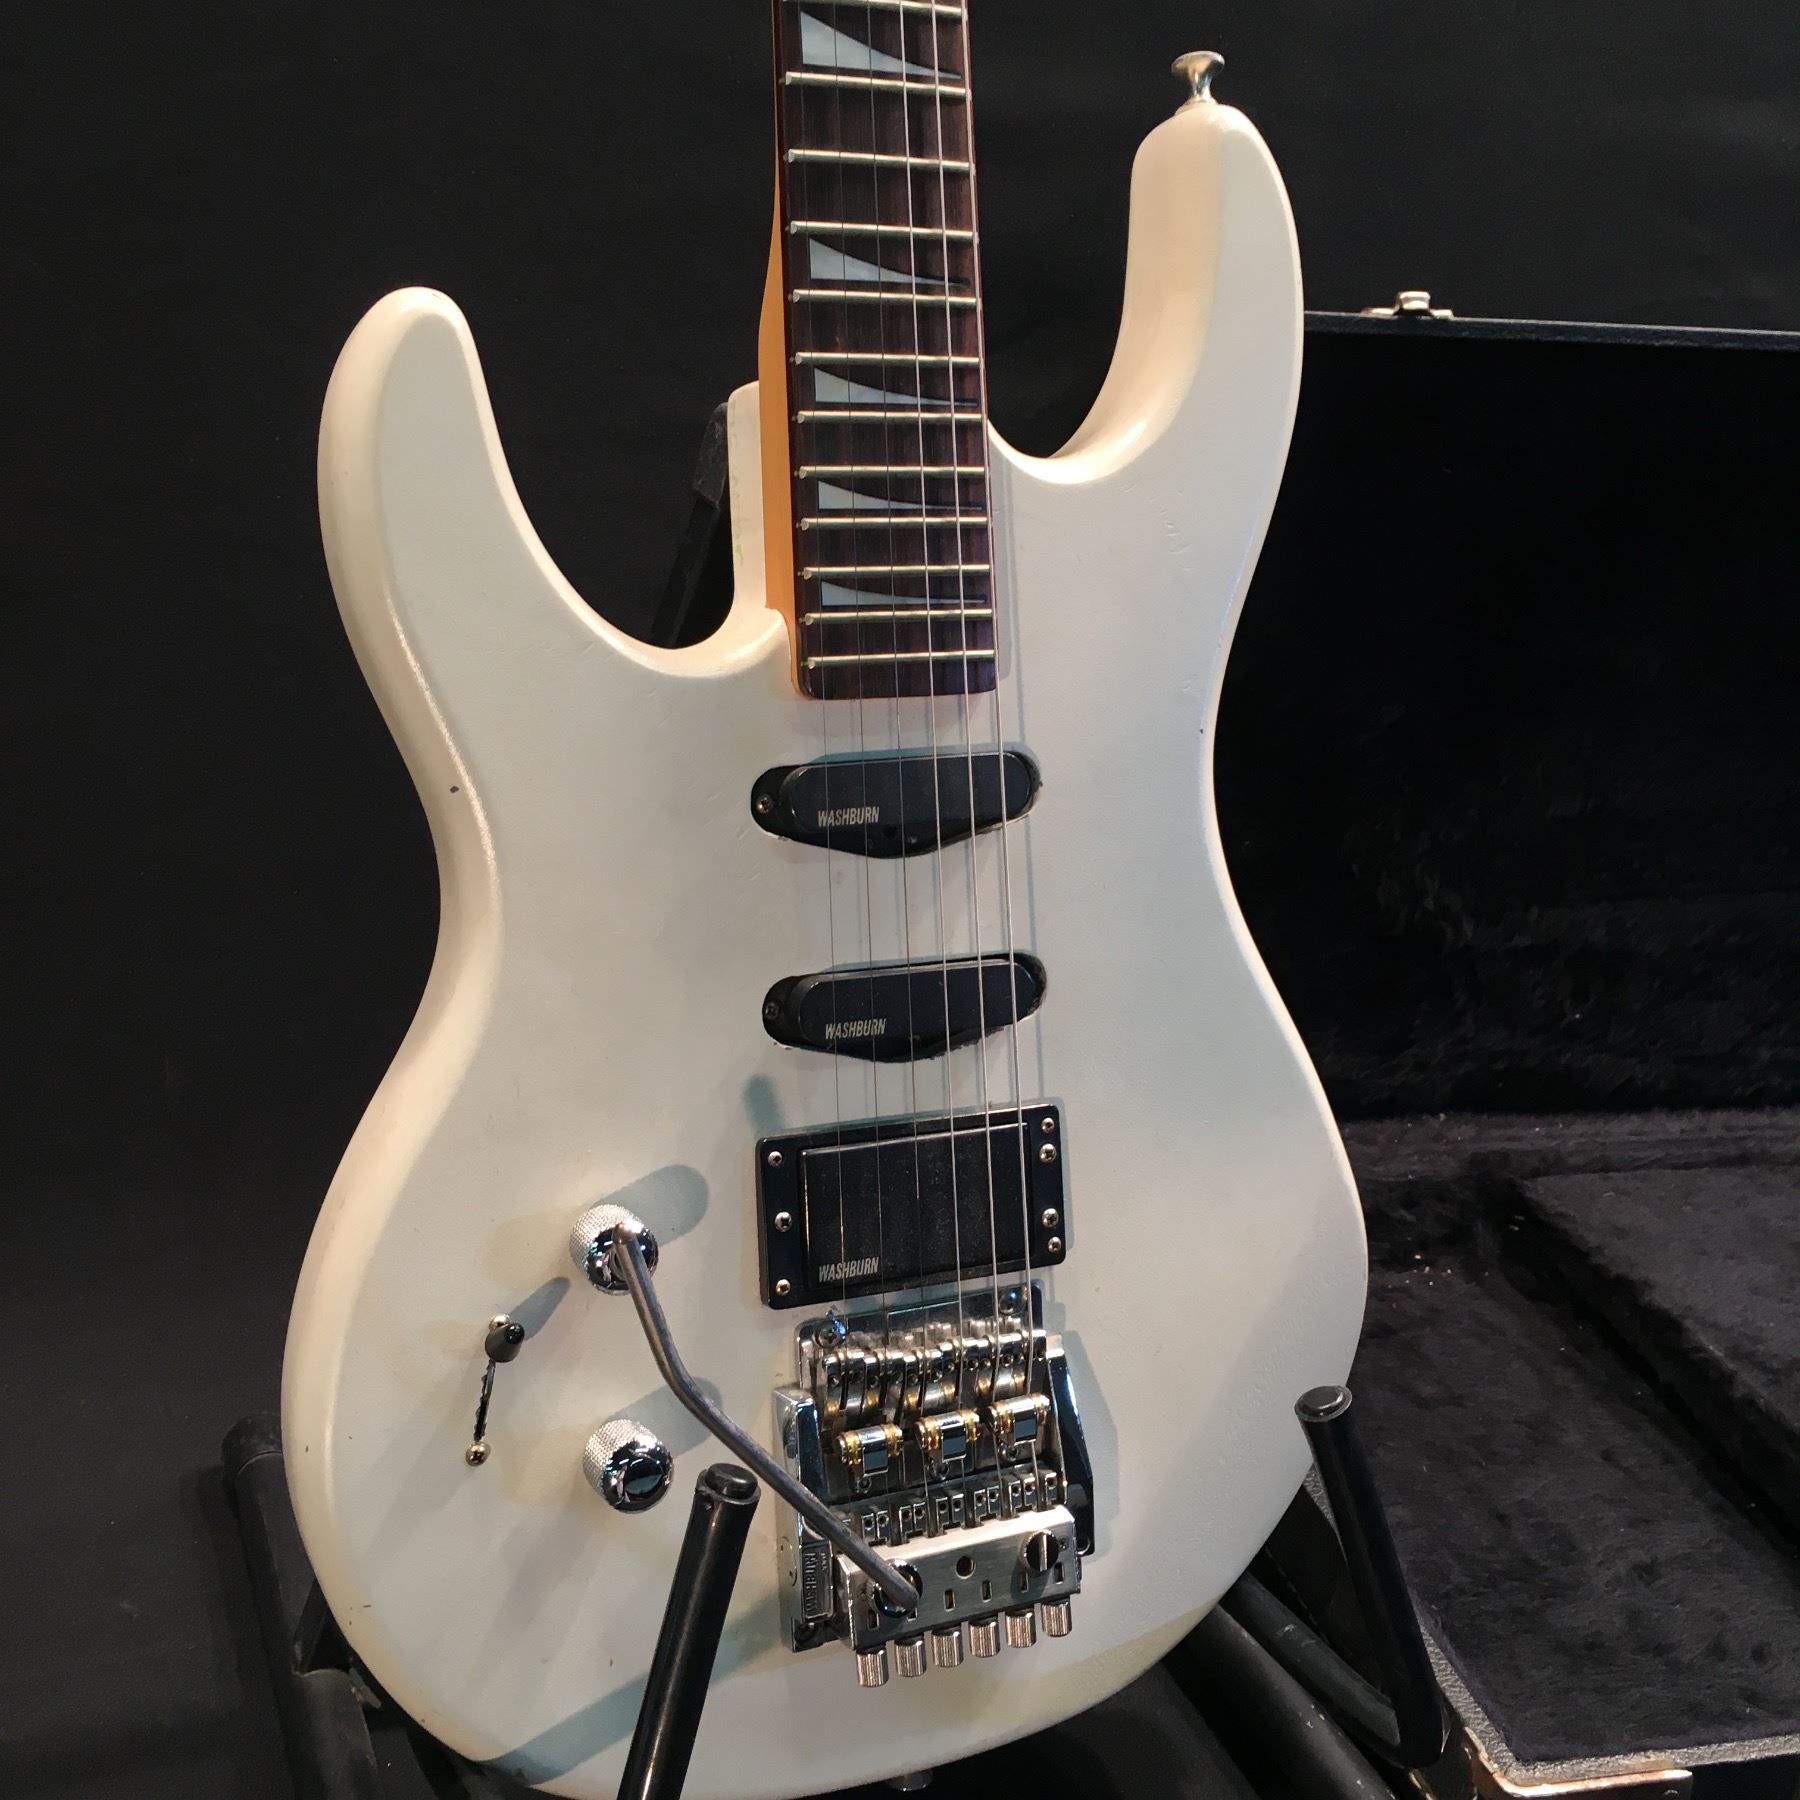 Nice Pit Bike Stator Wiring Thick Les Paul 3 Pickup Wiring Diagram Regular Telecaster 5 Way Switch Wiring Bulldog Security Remote Car Starter Old Tele 3 Way Switch DarkTsb Bulletins WASHBURN G 5V LEFT HANDED ELECTRIC GUITAR, WITH ONE HUMBUCKER AND ..